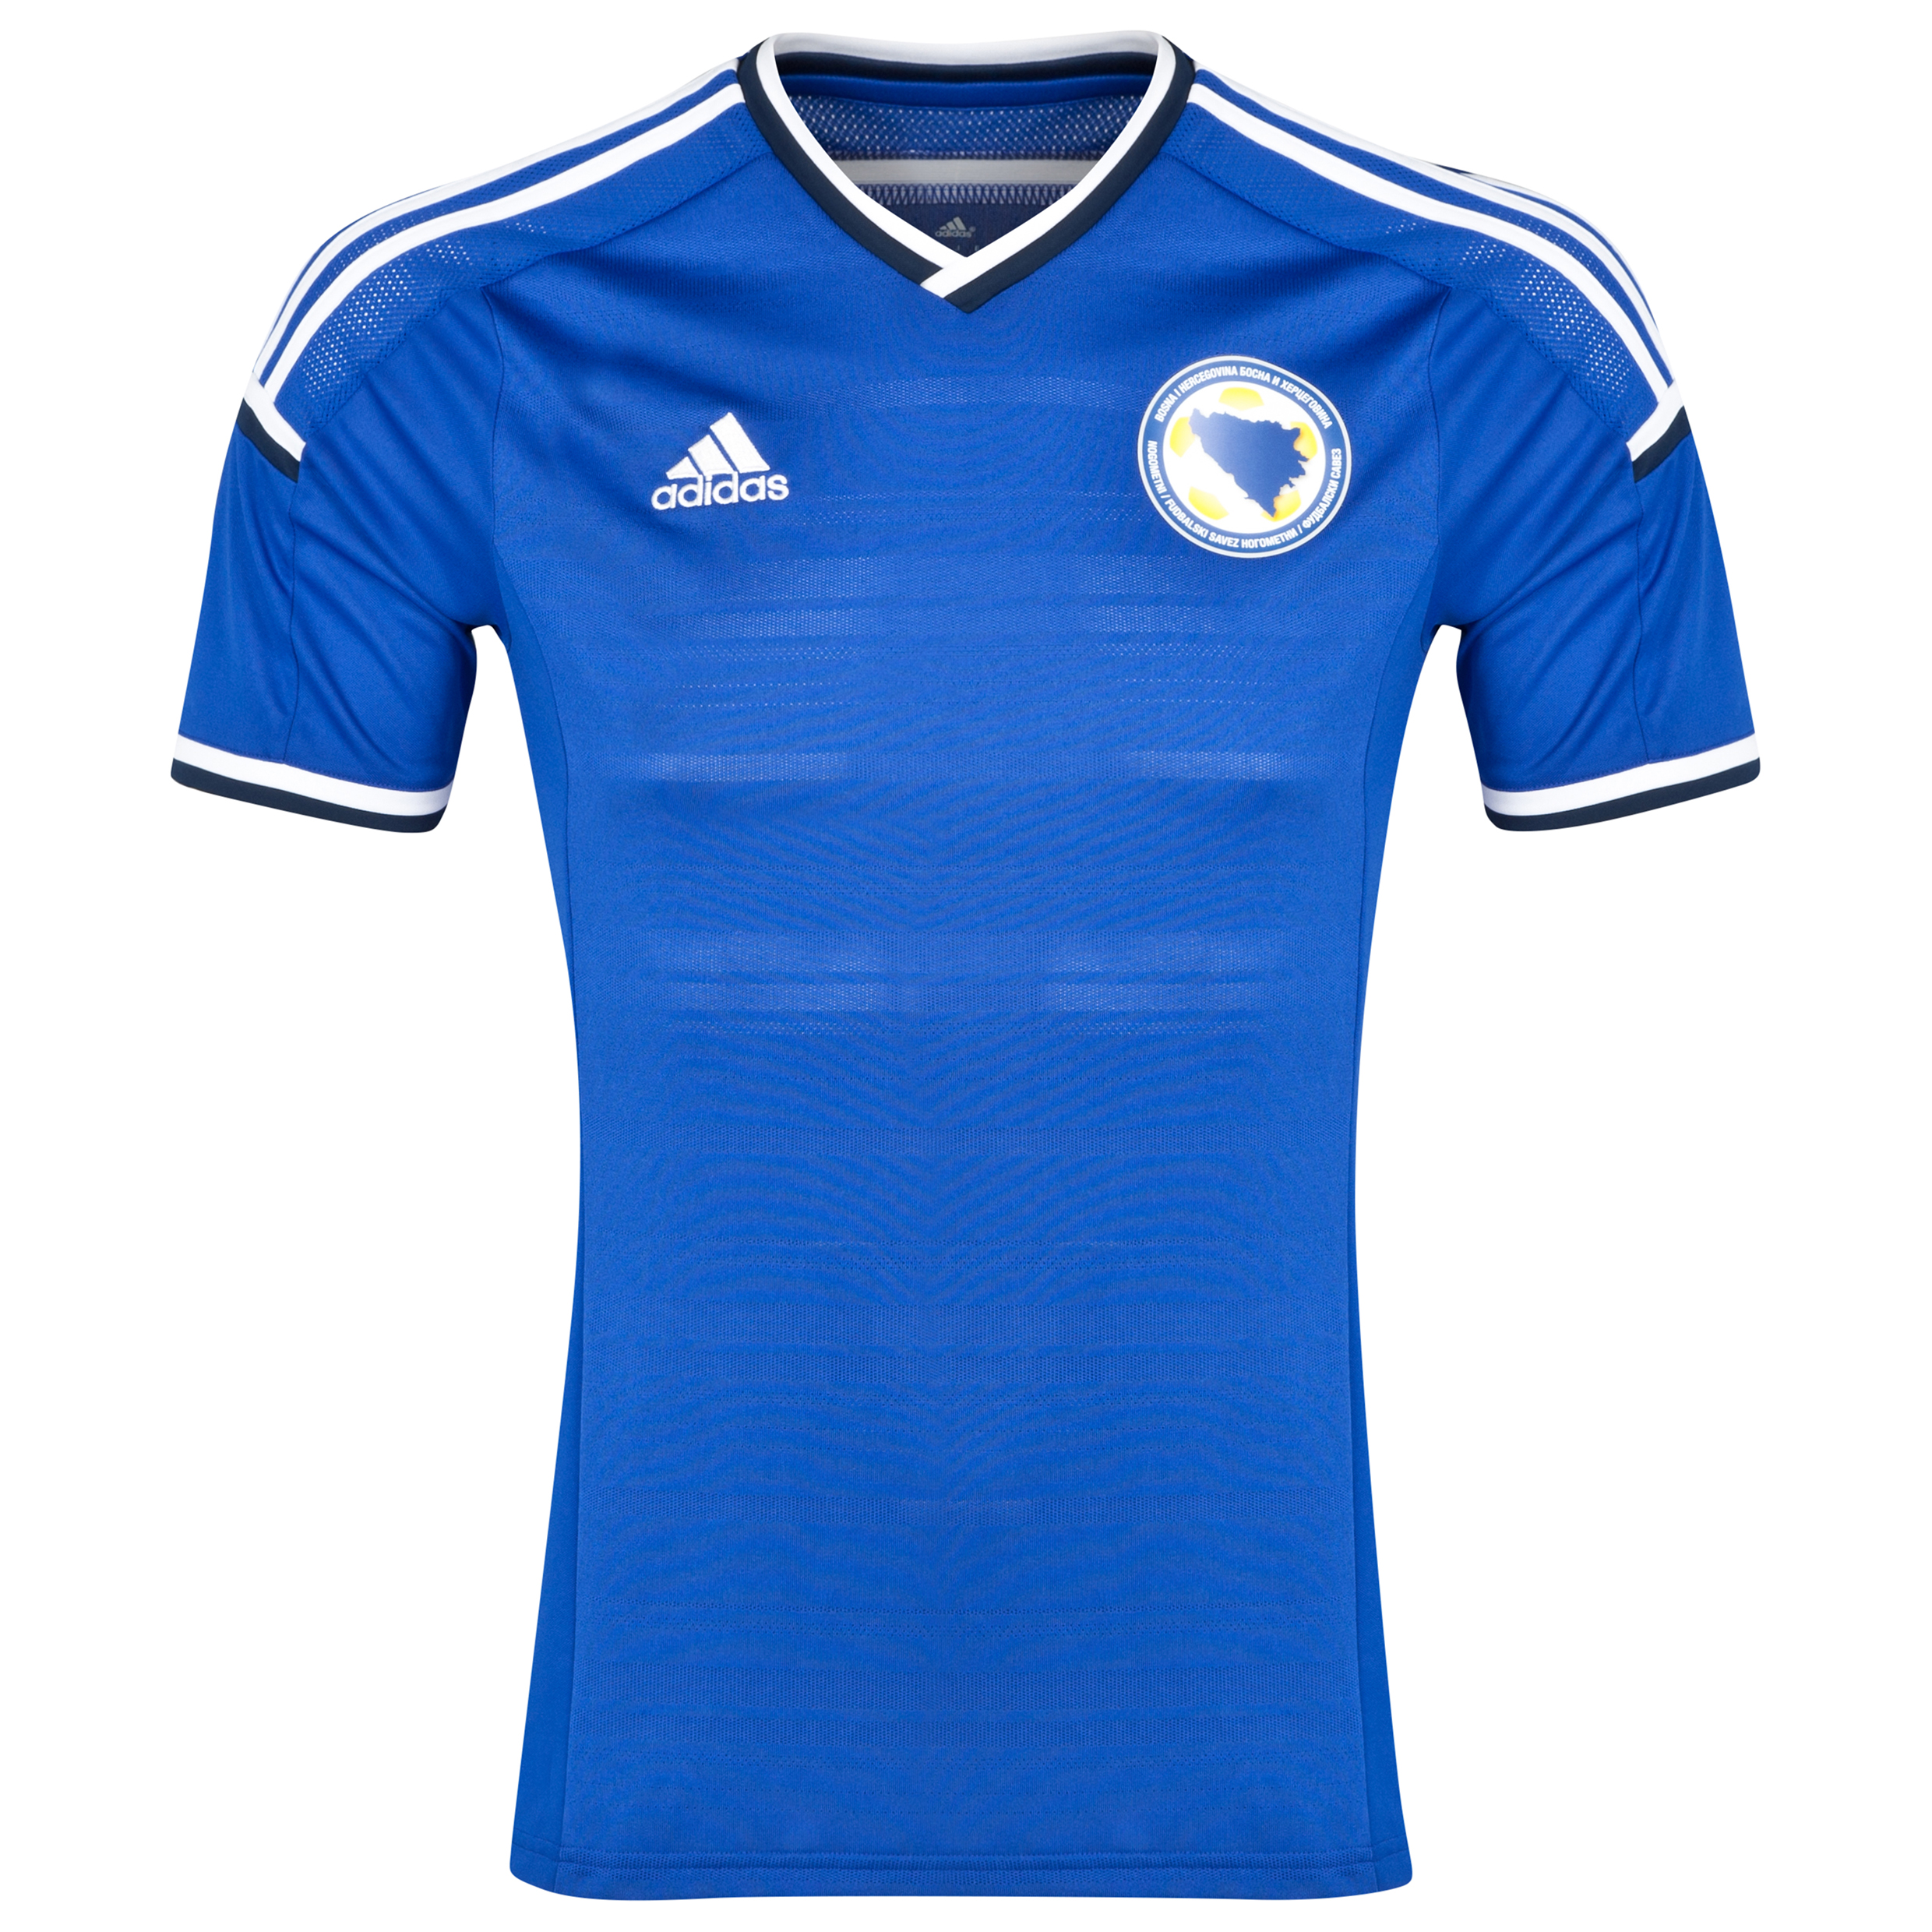 Bosnia-Herzegovina Home Shirt 2014/15 - Kids Blue